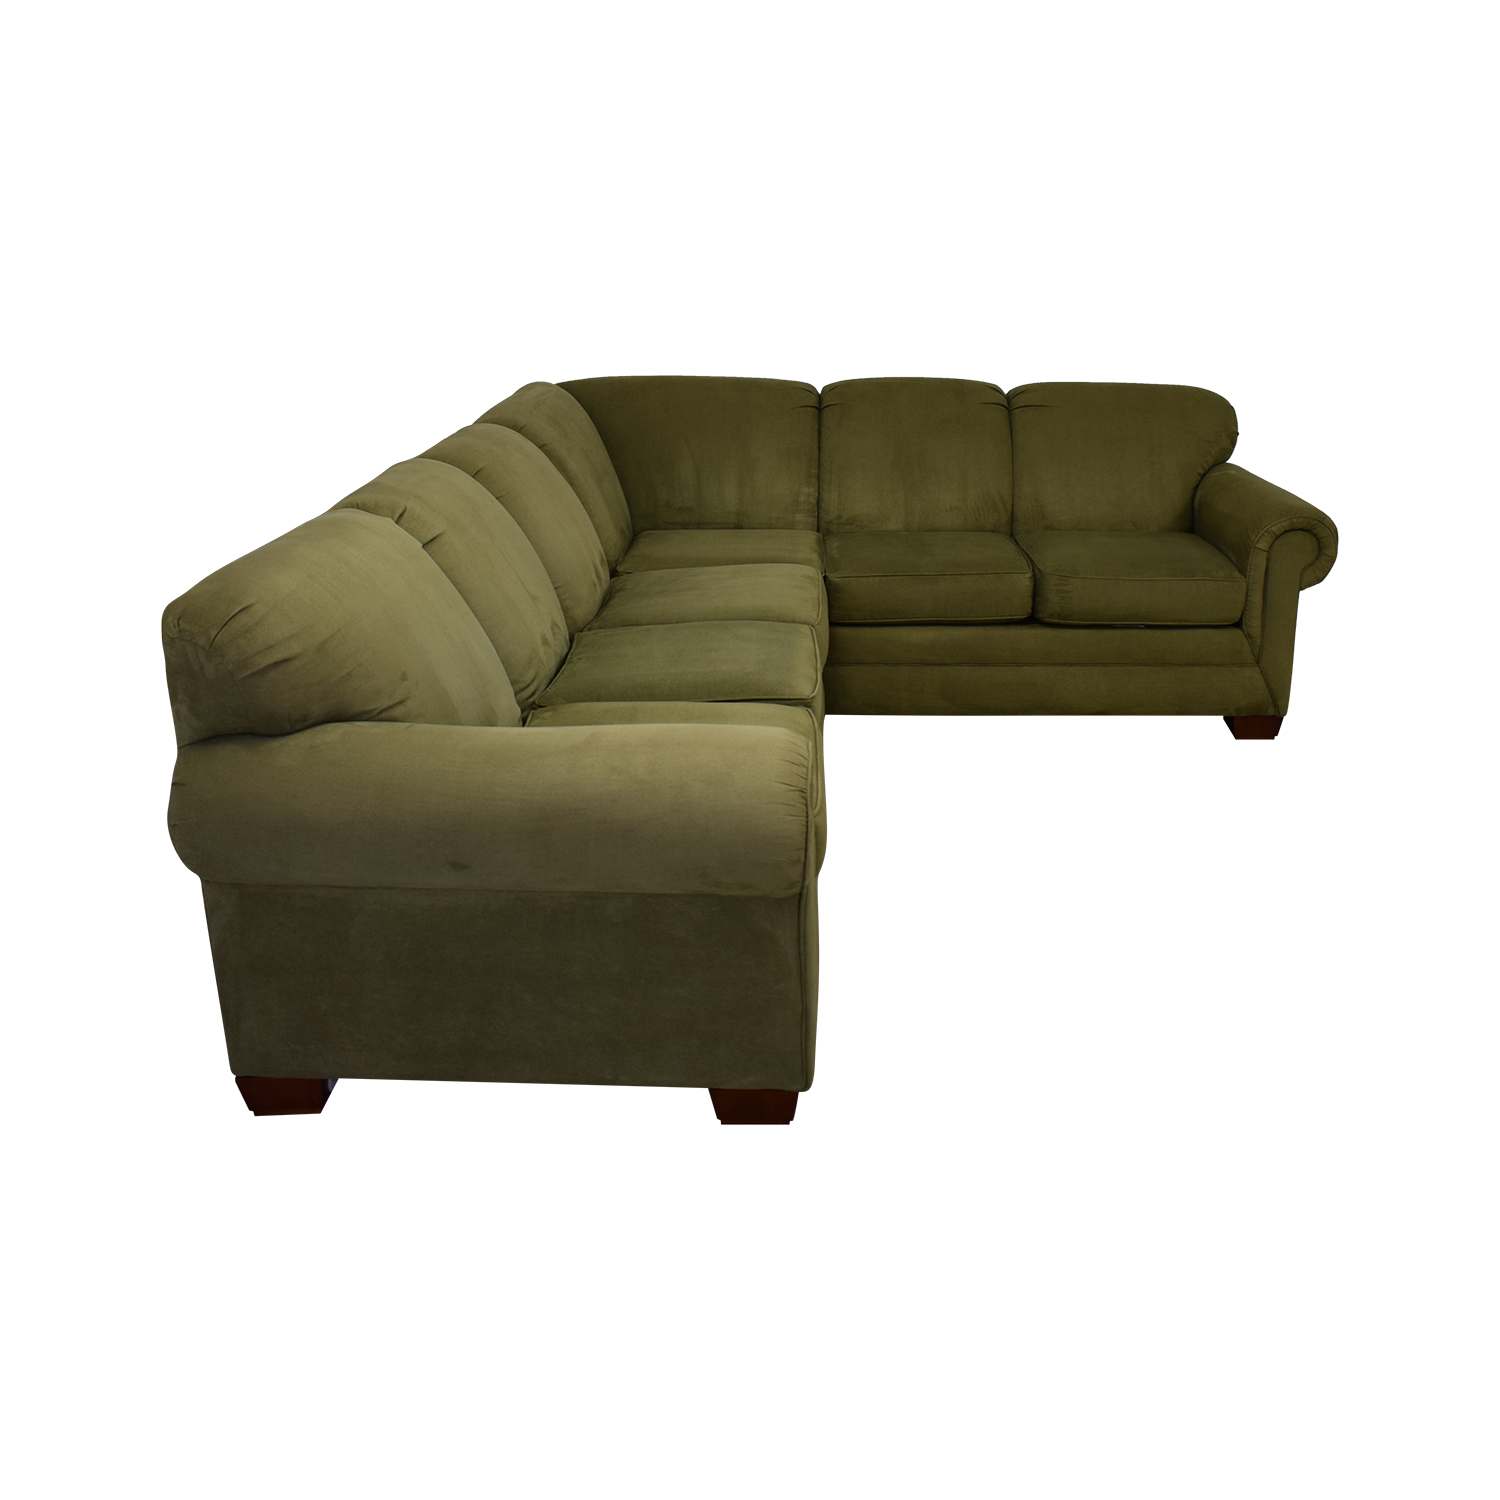 74% OFF - England Furniture England Furniture Green Sectional / Sofas